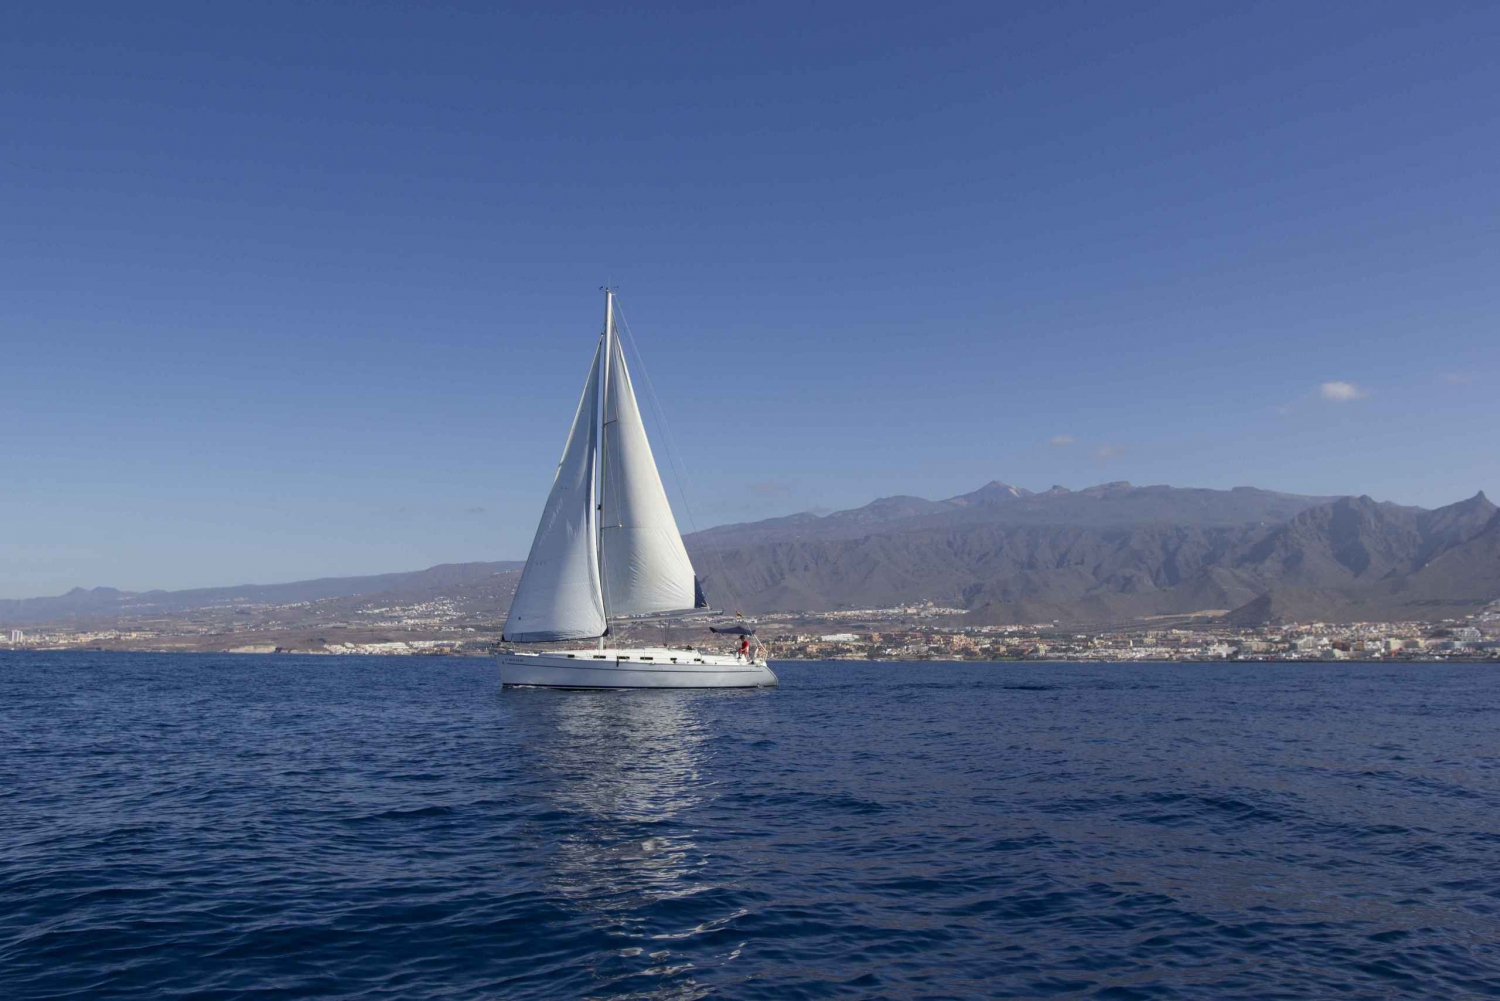 3-Hour Tenerife Sea Excursion